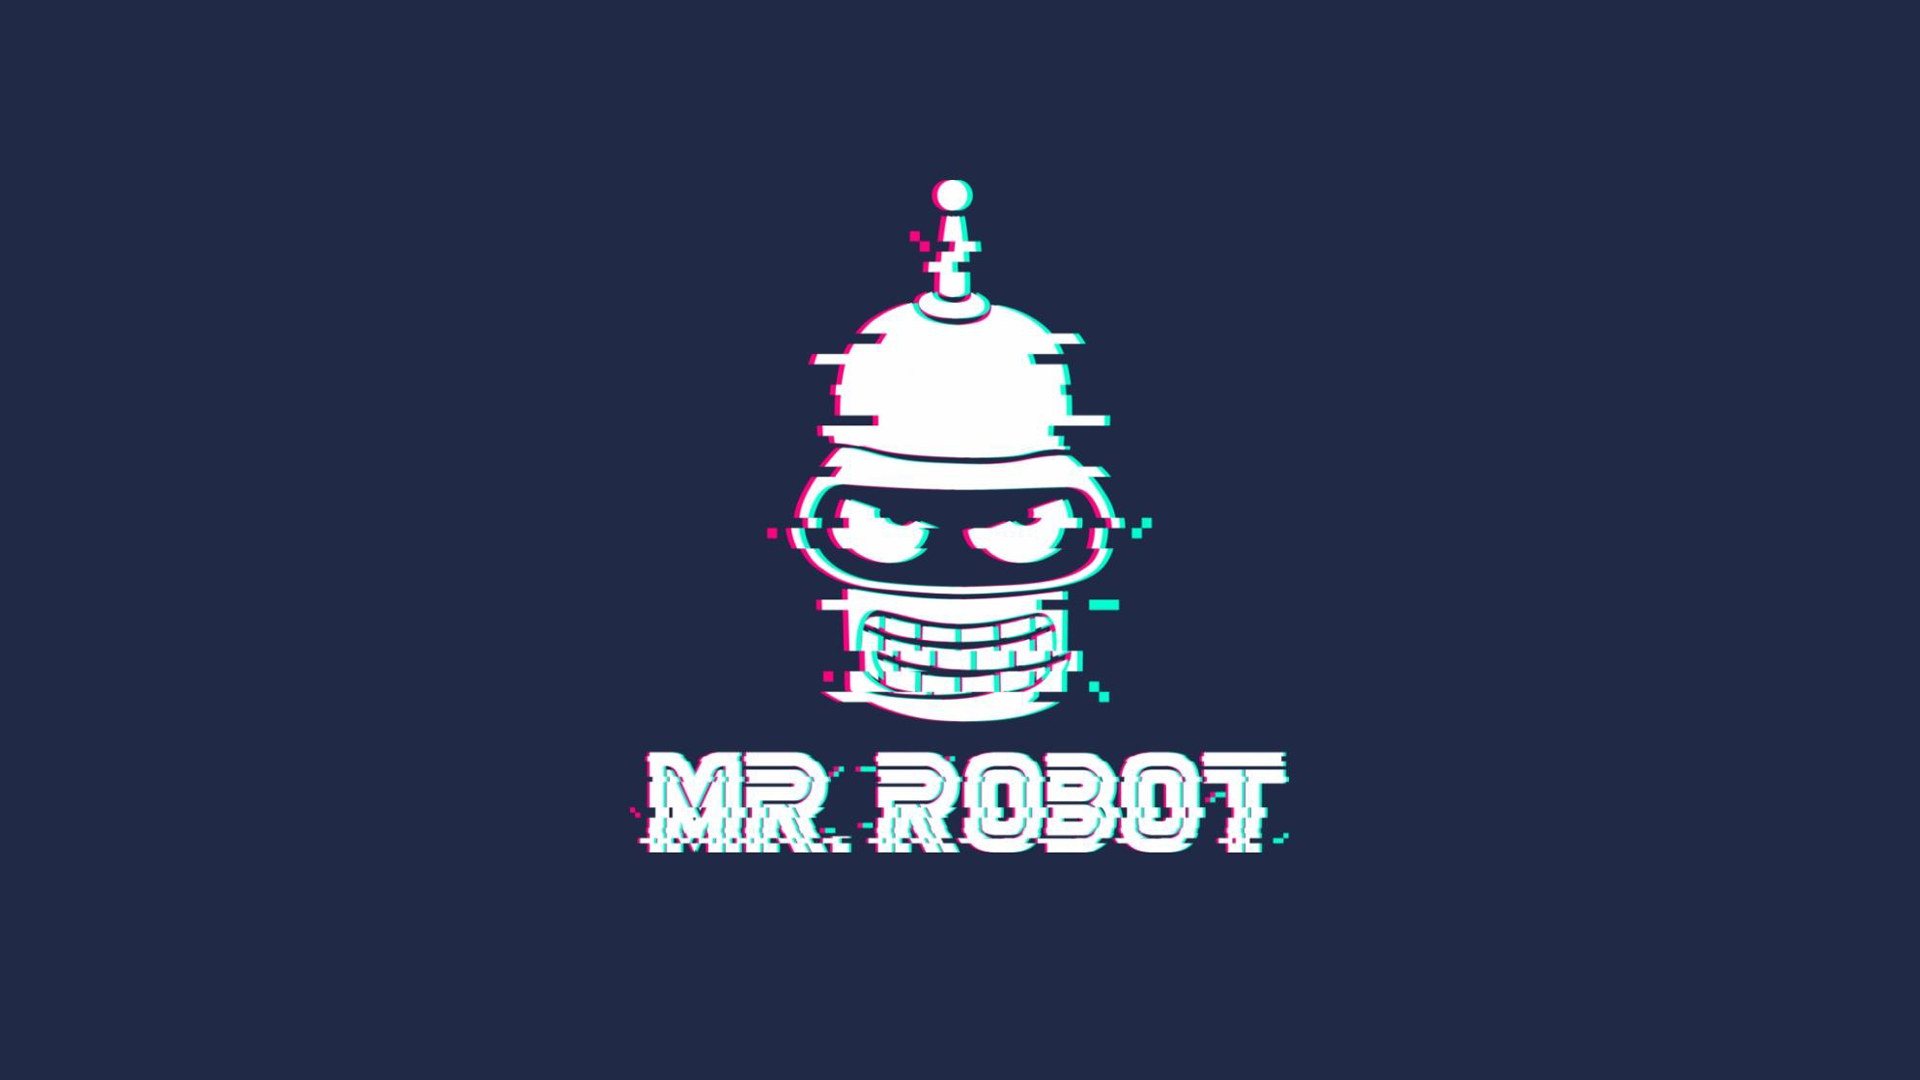 480x854 Mr Robot Android One Mobile Wallpaper Hd Tv Series